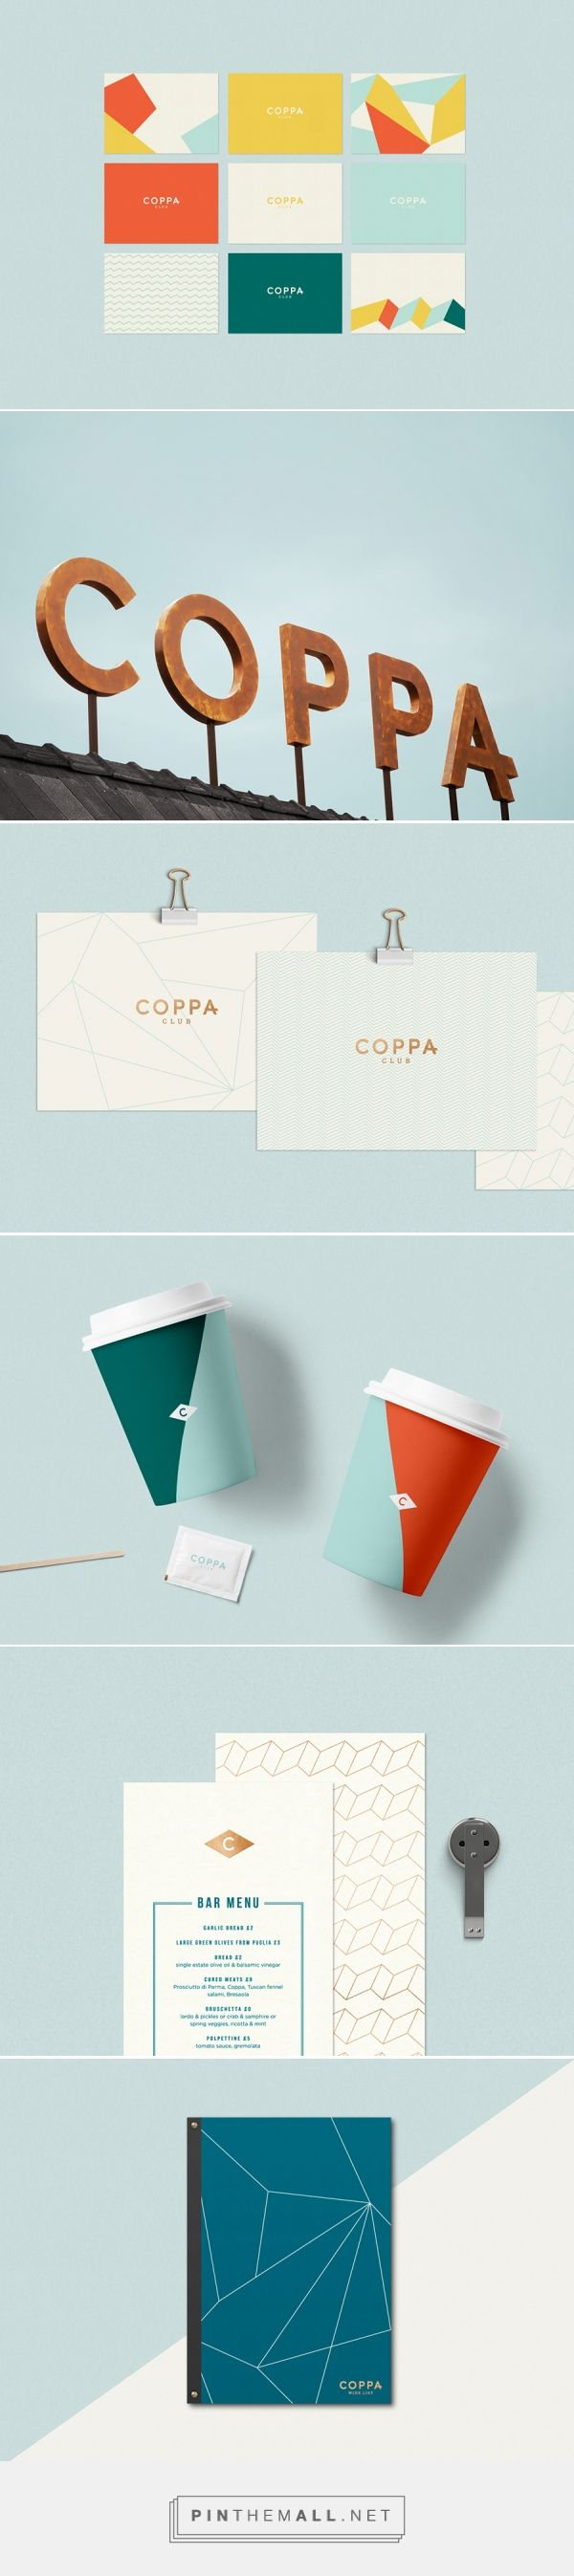 511 best m & c o . images on Pinterest | Graphics, Menu layout and ...